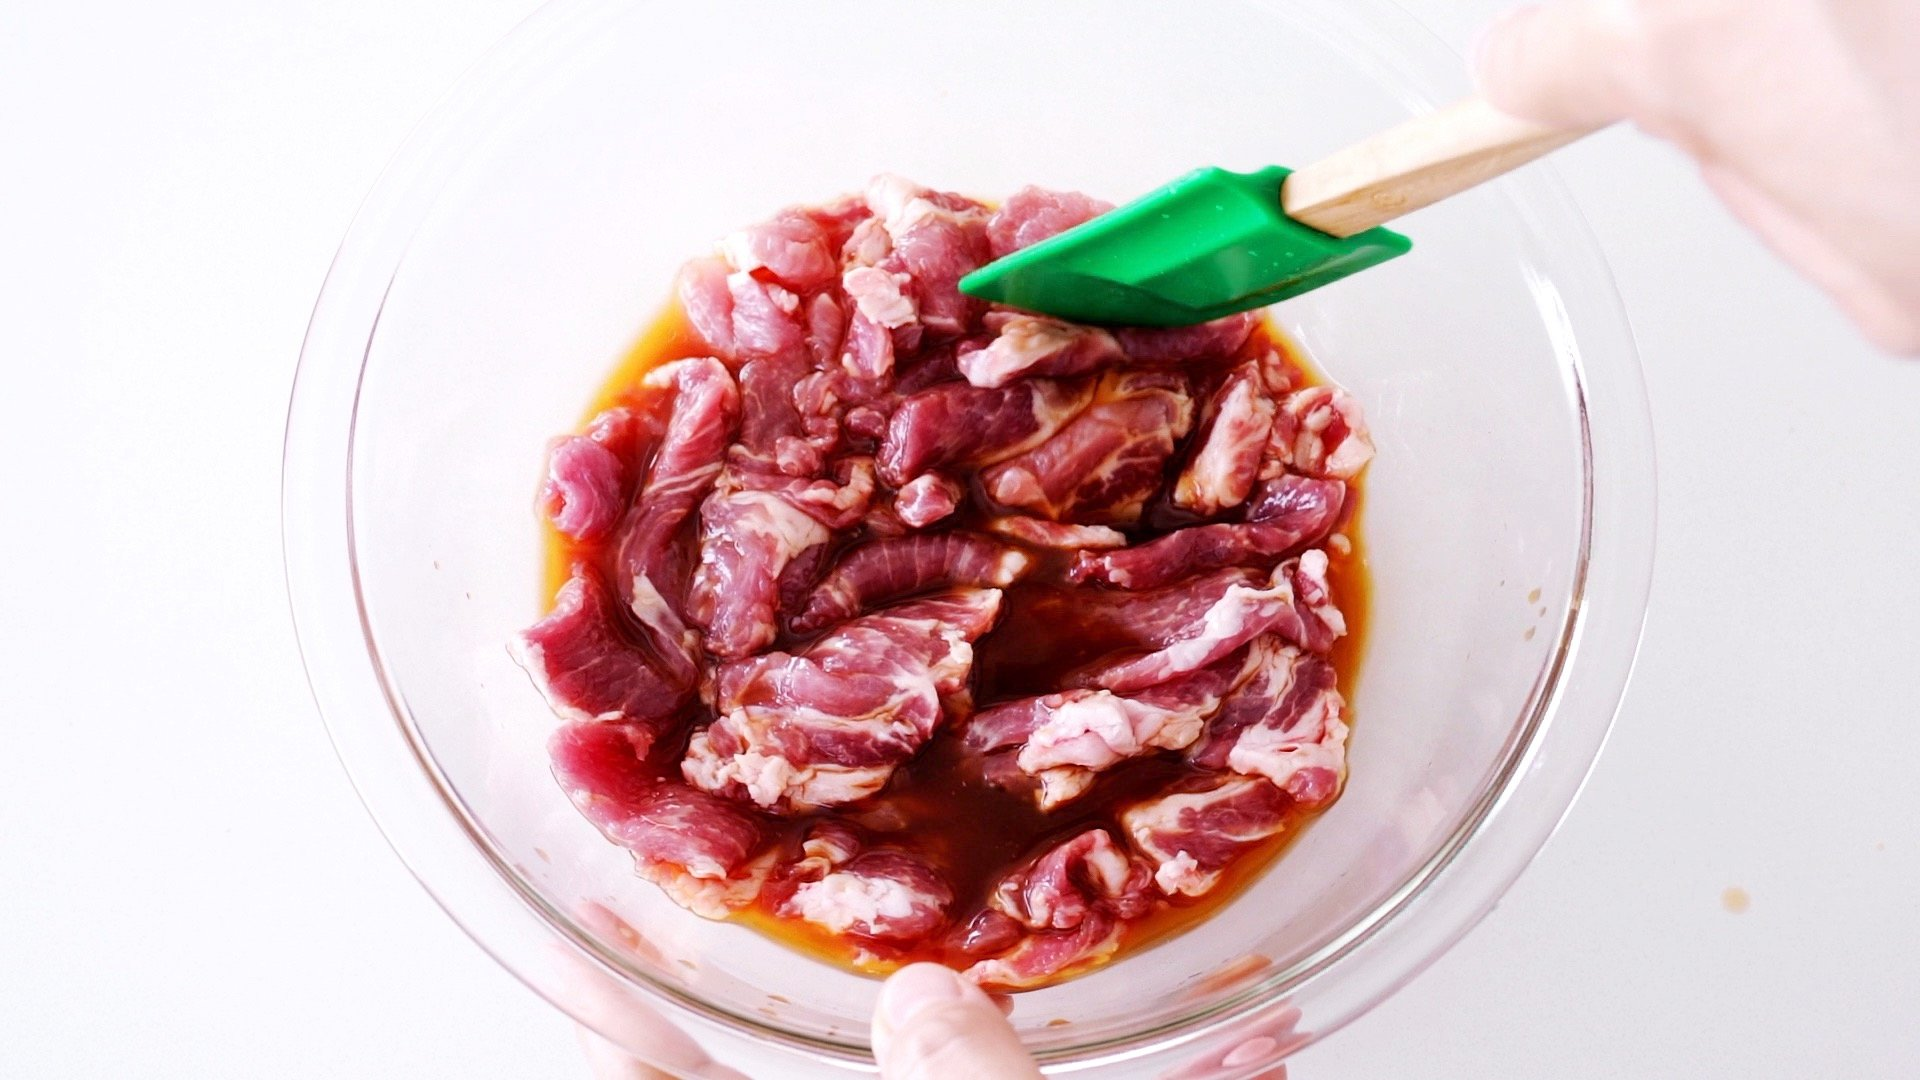 Marinating thin slices of pork shoulder in a shogayaki sauce to make ginger pork.